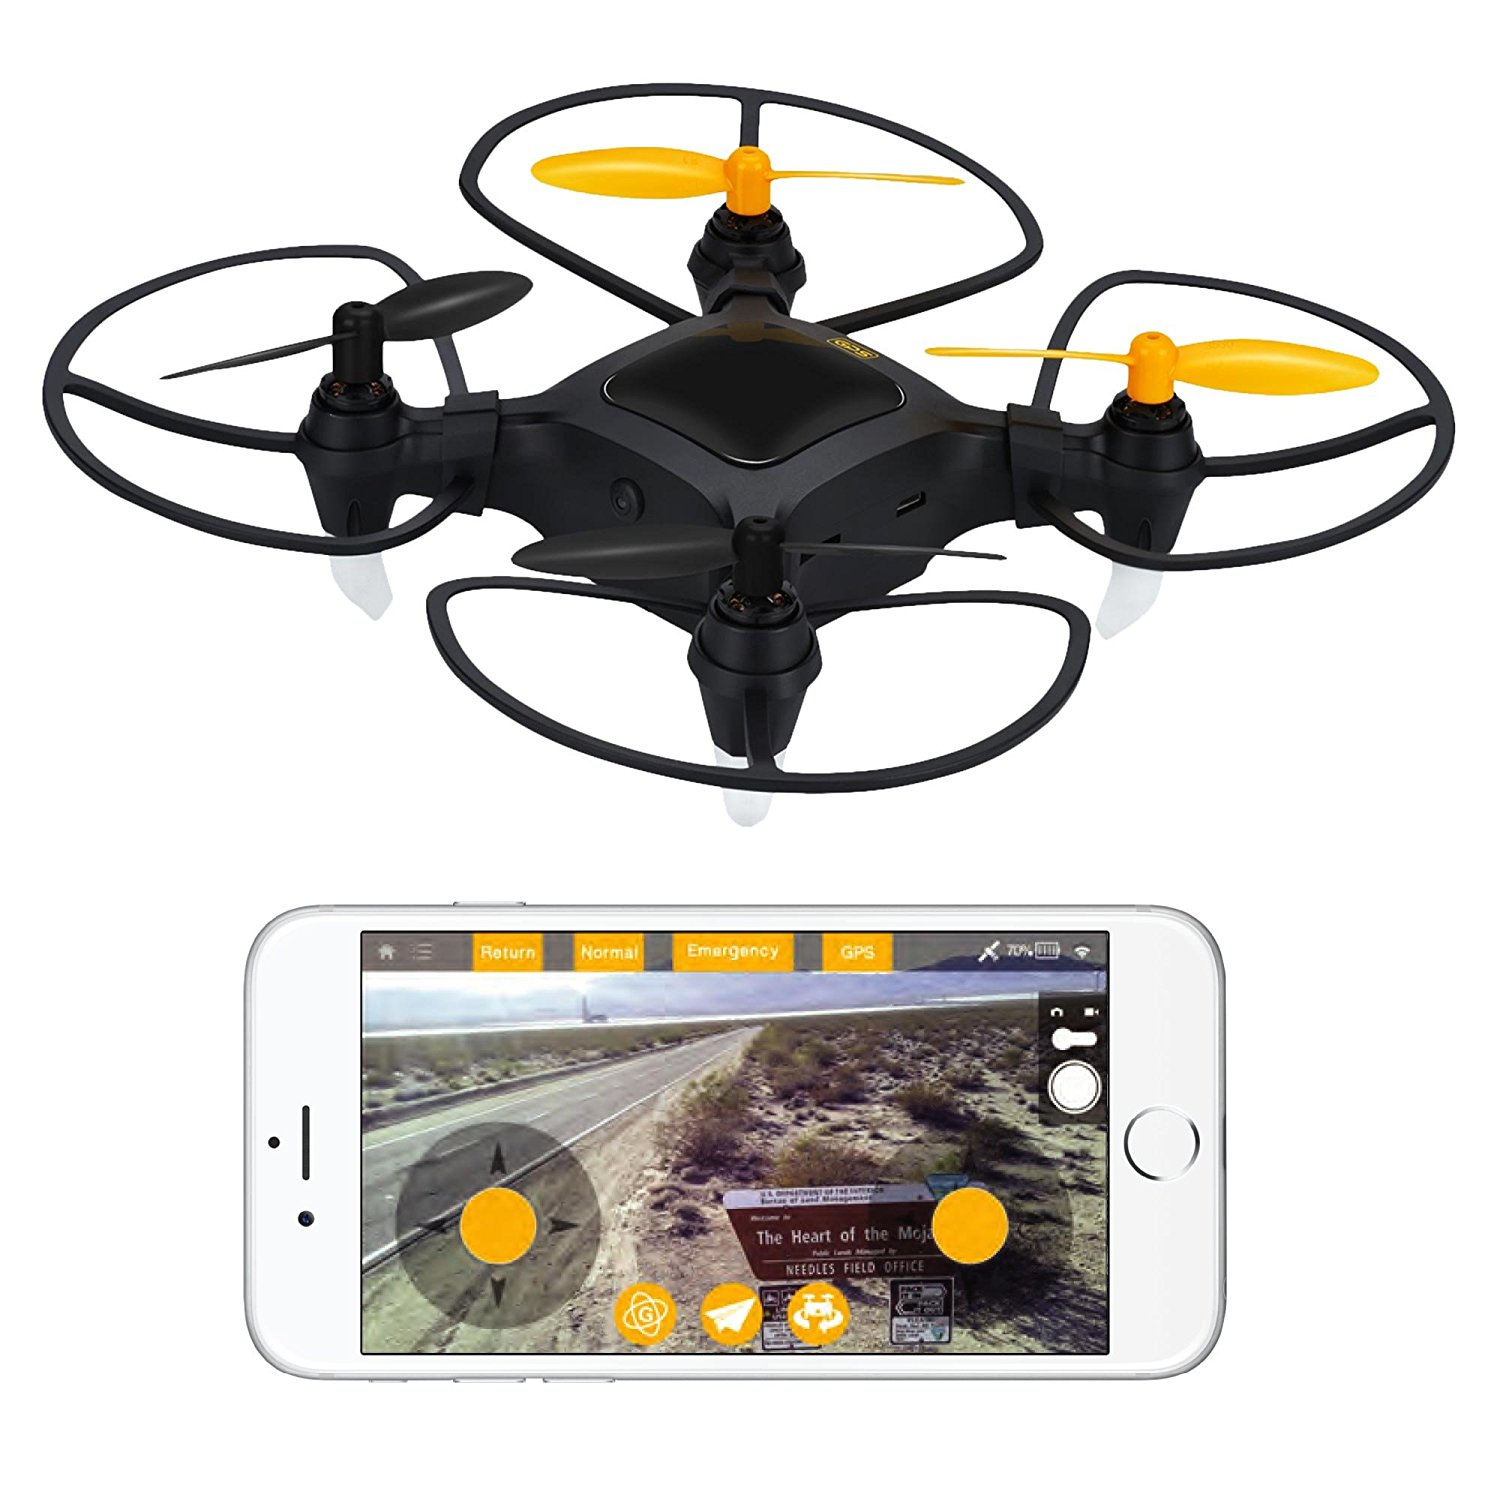 small drone with camera reviews